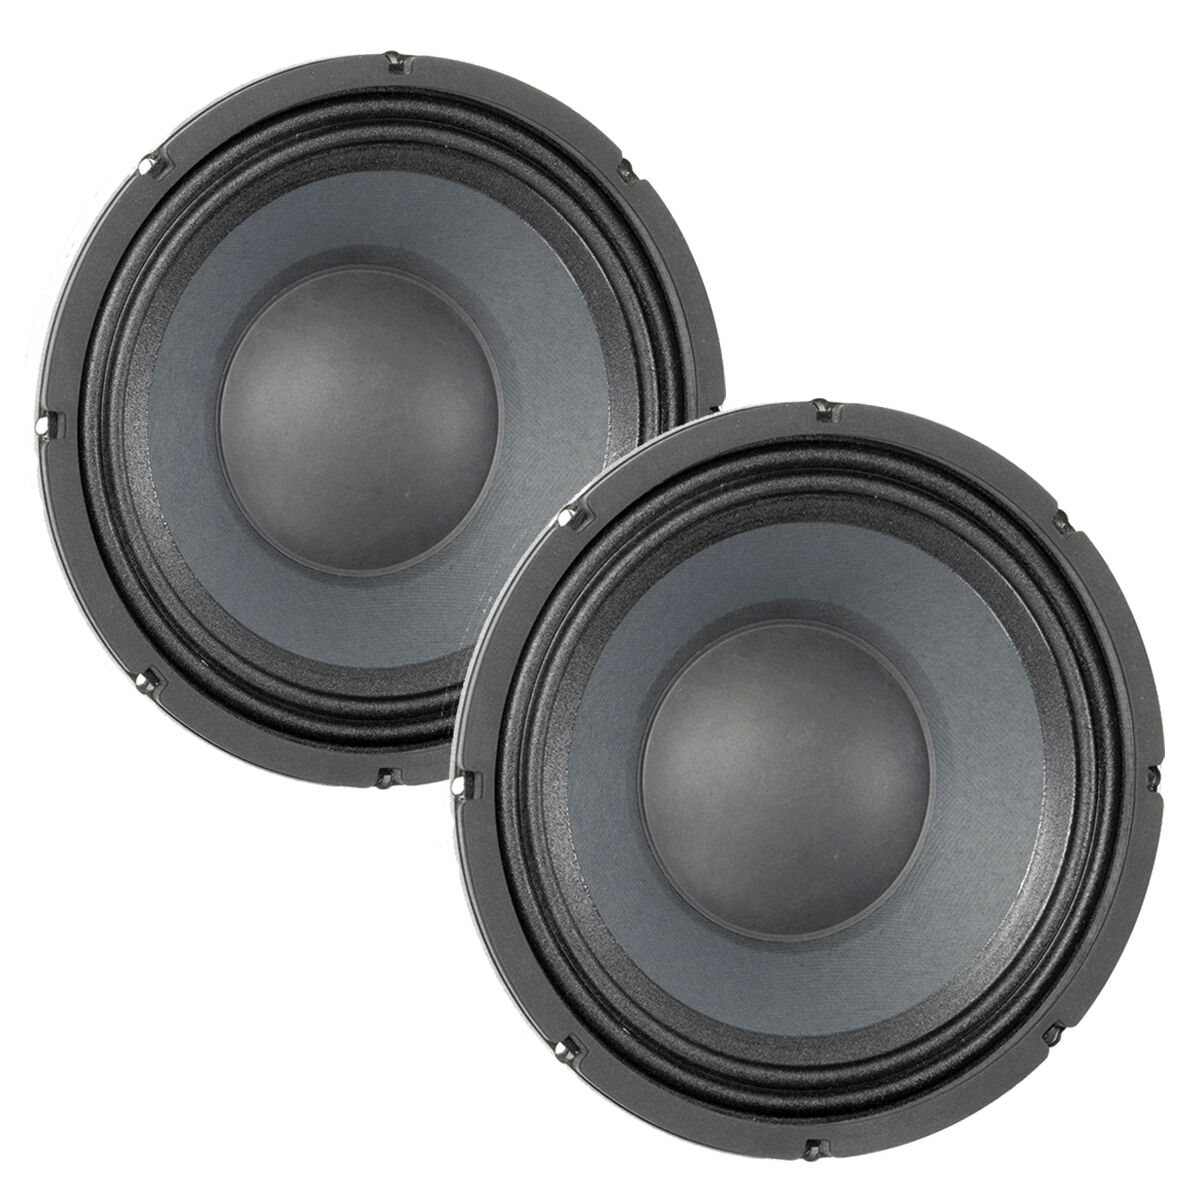 Pair Eminence Deltalite II 2510 10 inch Neo Woofer Replacement Speaker 8ohm 500W